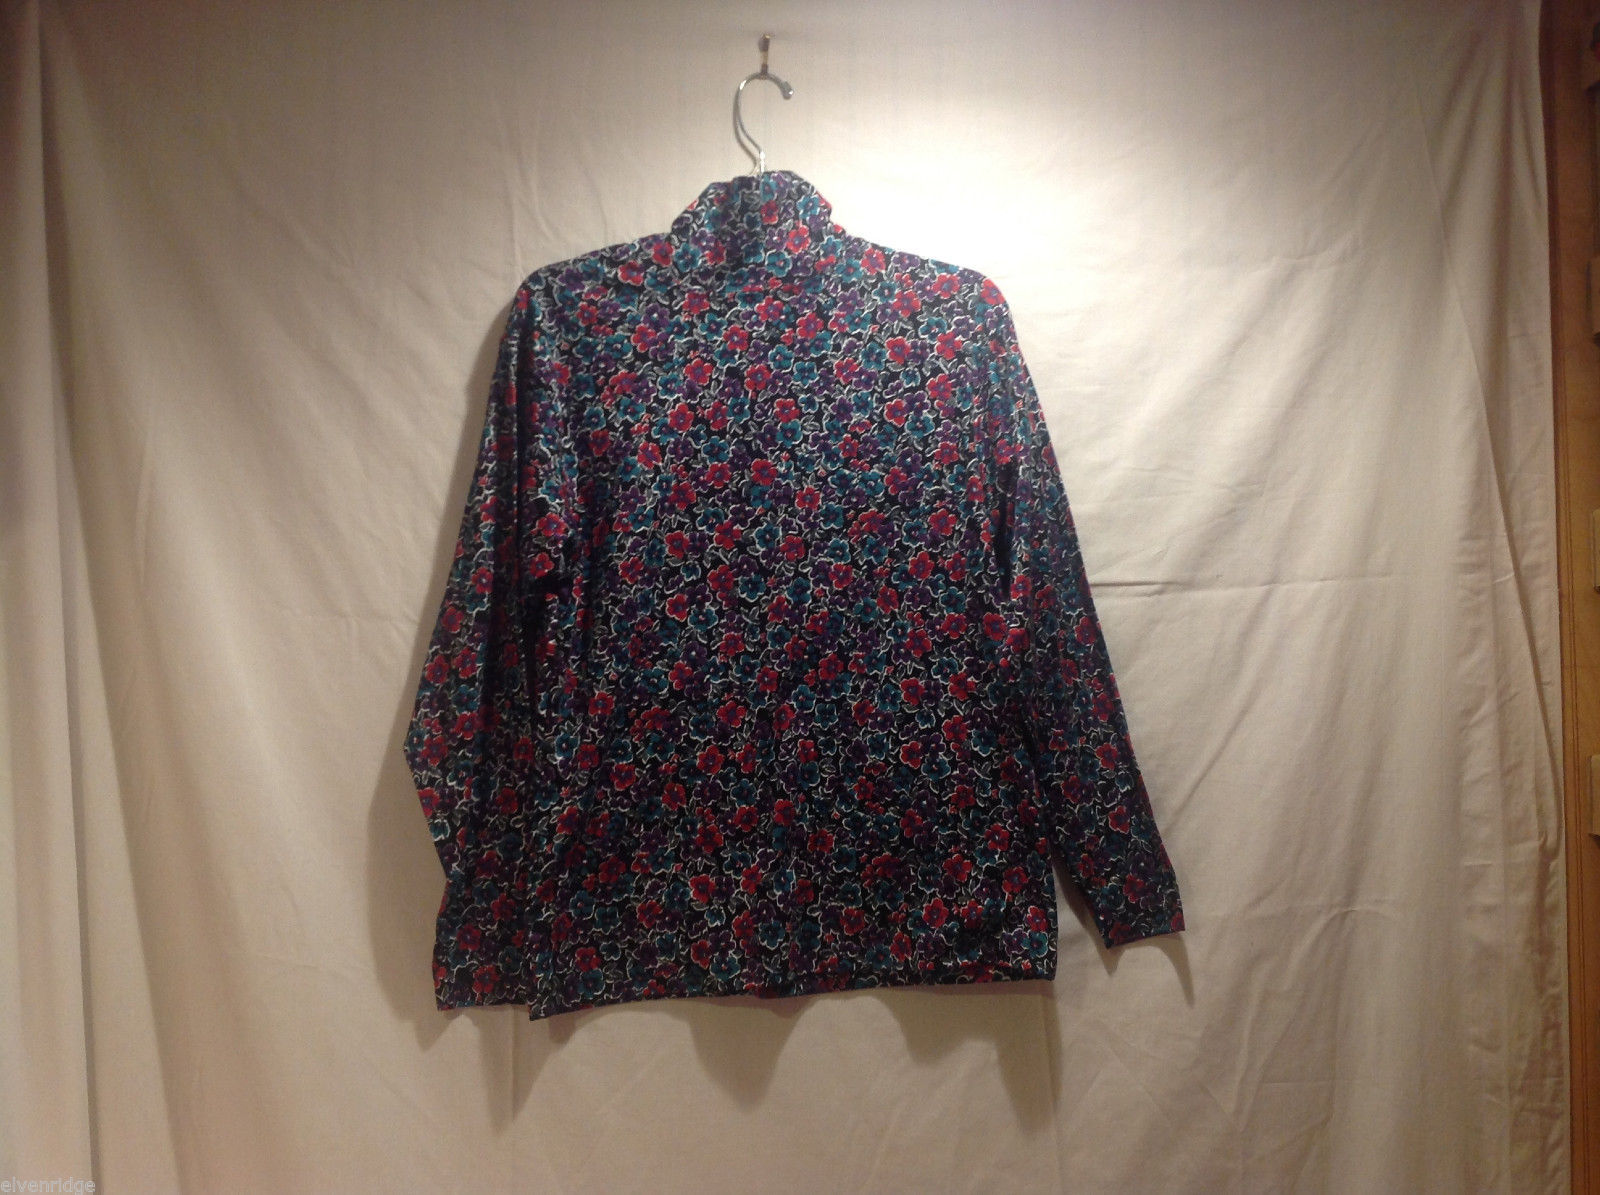 L.L.Bean Floral Print 100% Cotton Multicolor Mock Turtleneck Sweater, Size M